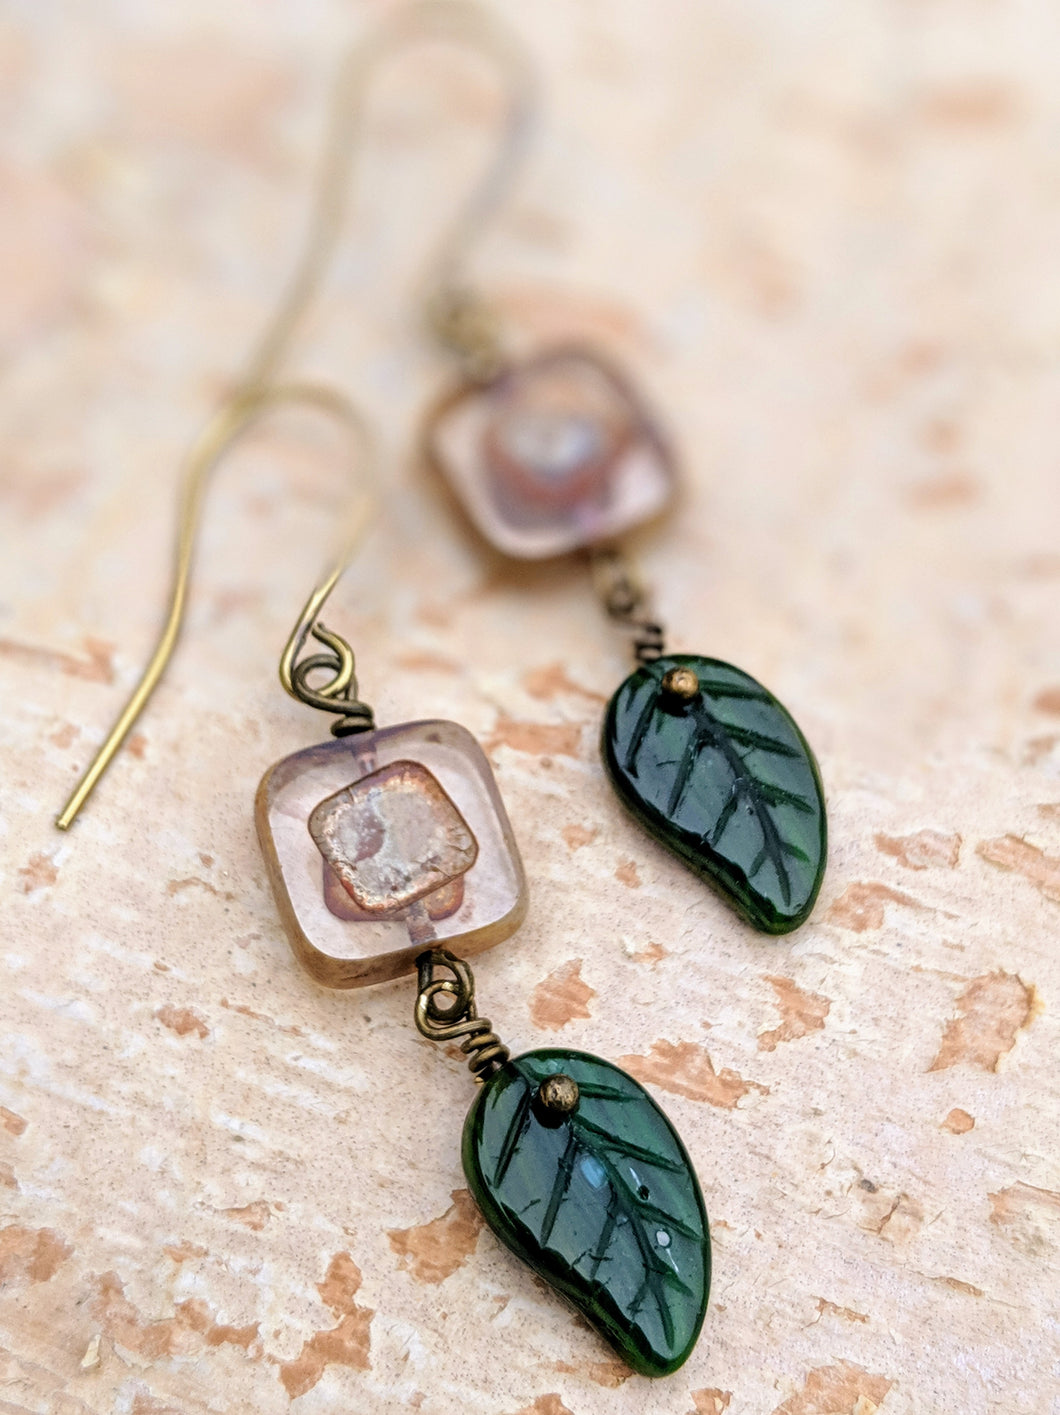 Crisp Mornings - Czech Glass Leaf Earrings - Minxes' Trinkets